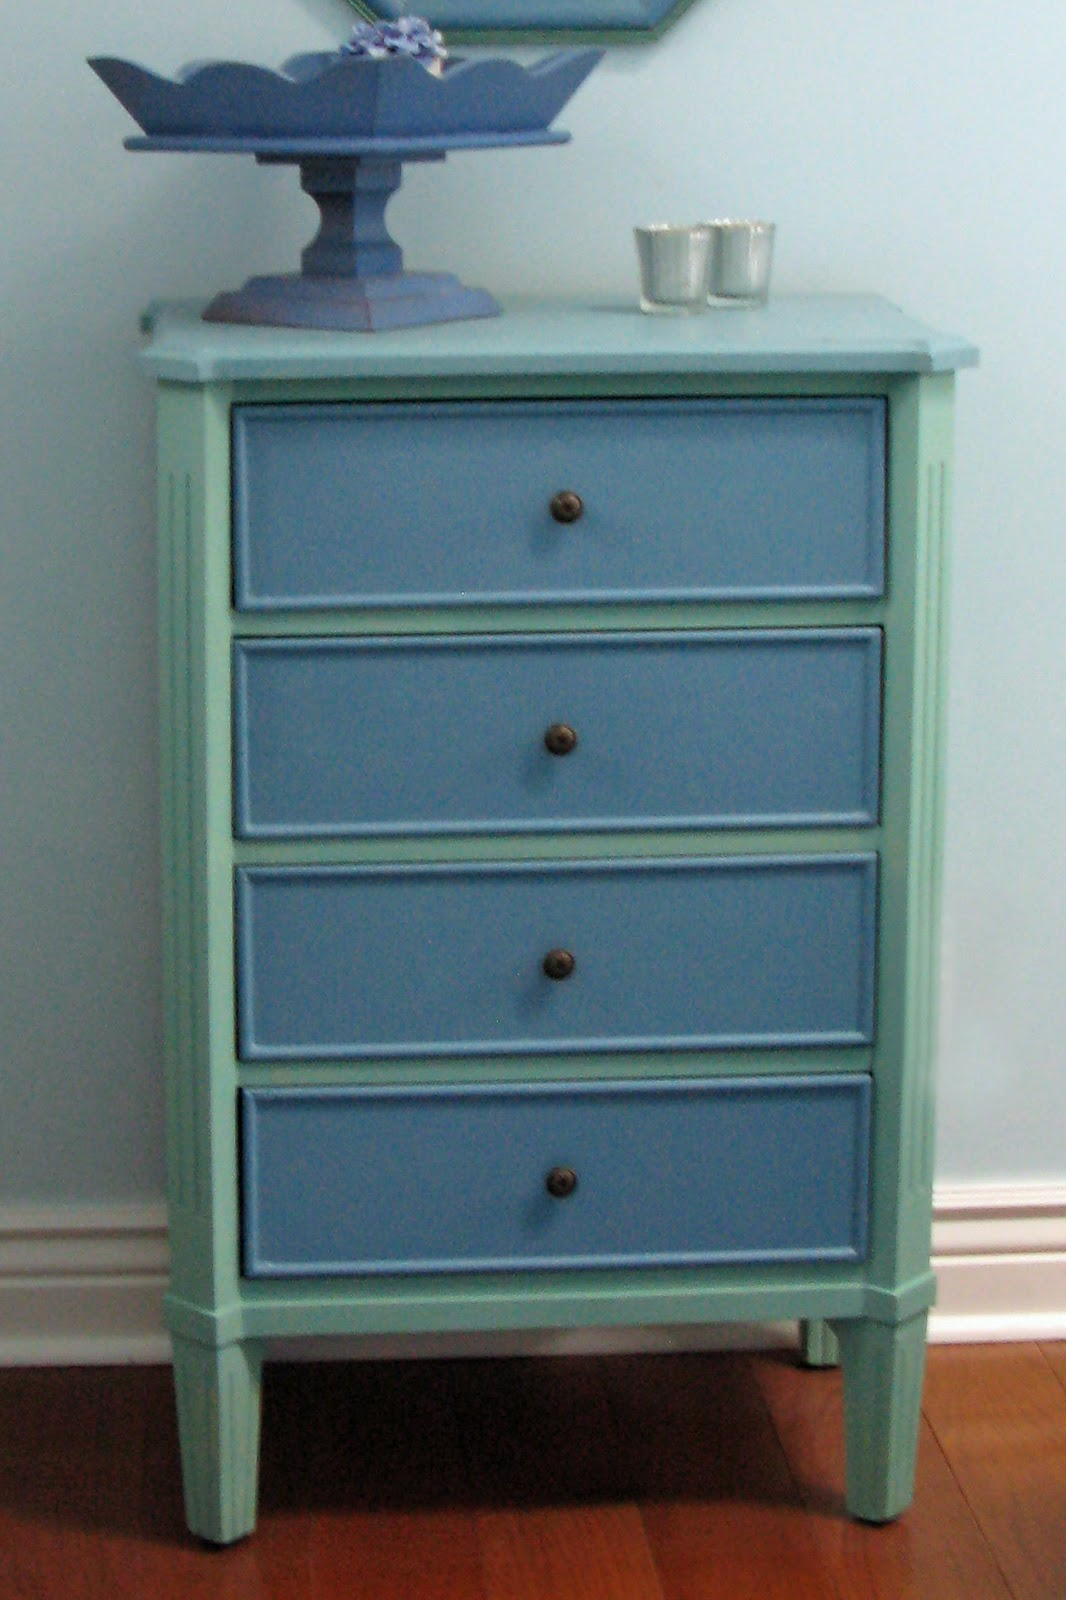 There are three colors of paint on this one little dresser  the top  sides  and drawers are all different. Just Grand  Before and After   Mini Chest of Drawers  Re do